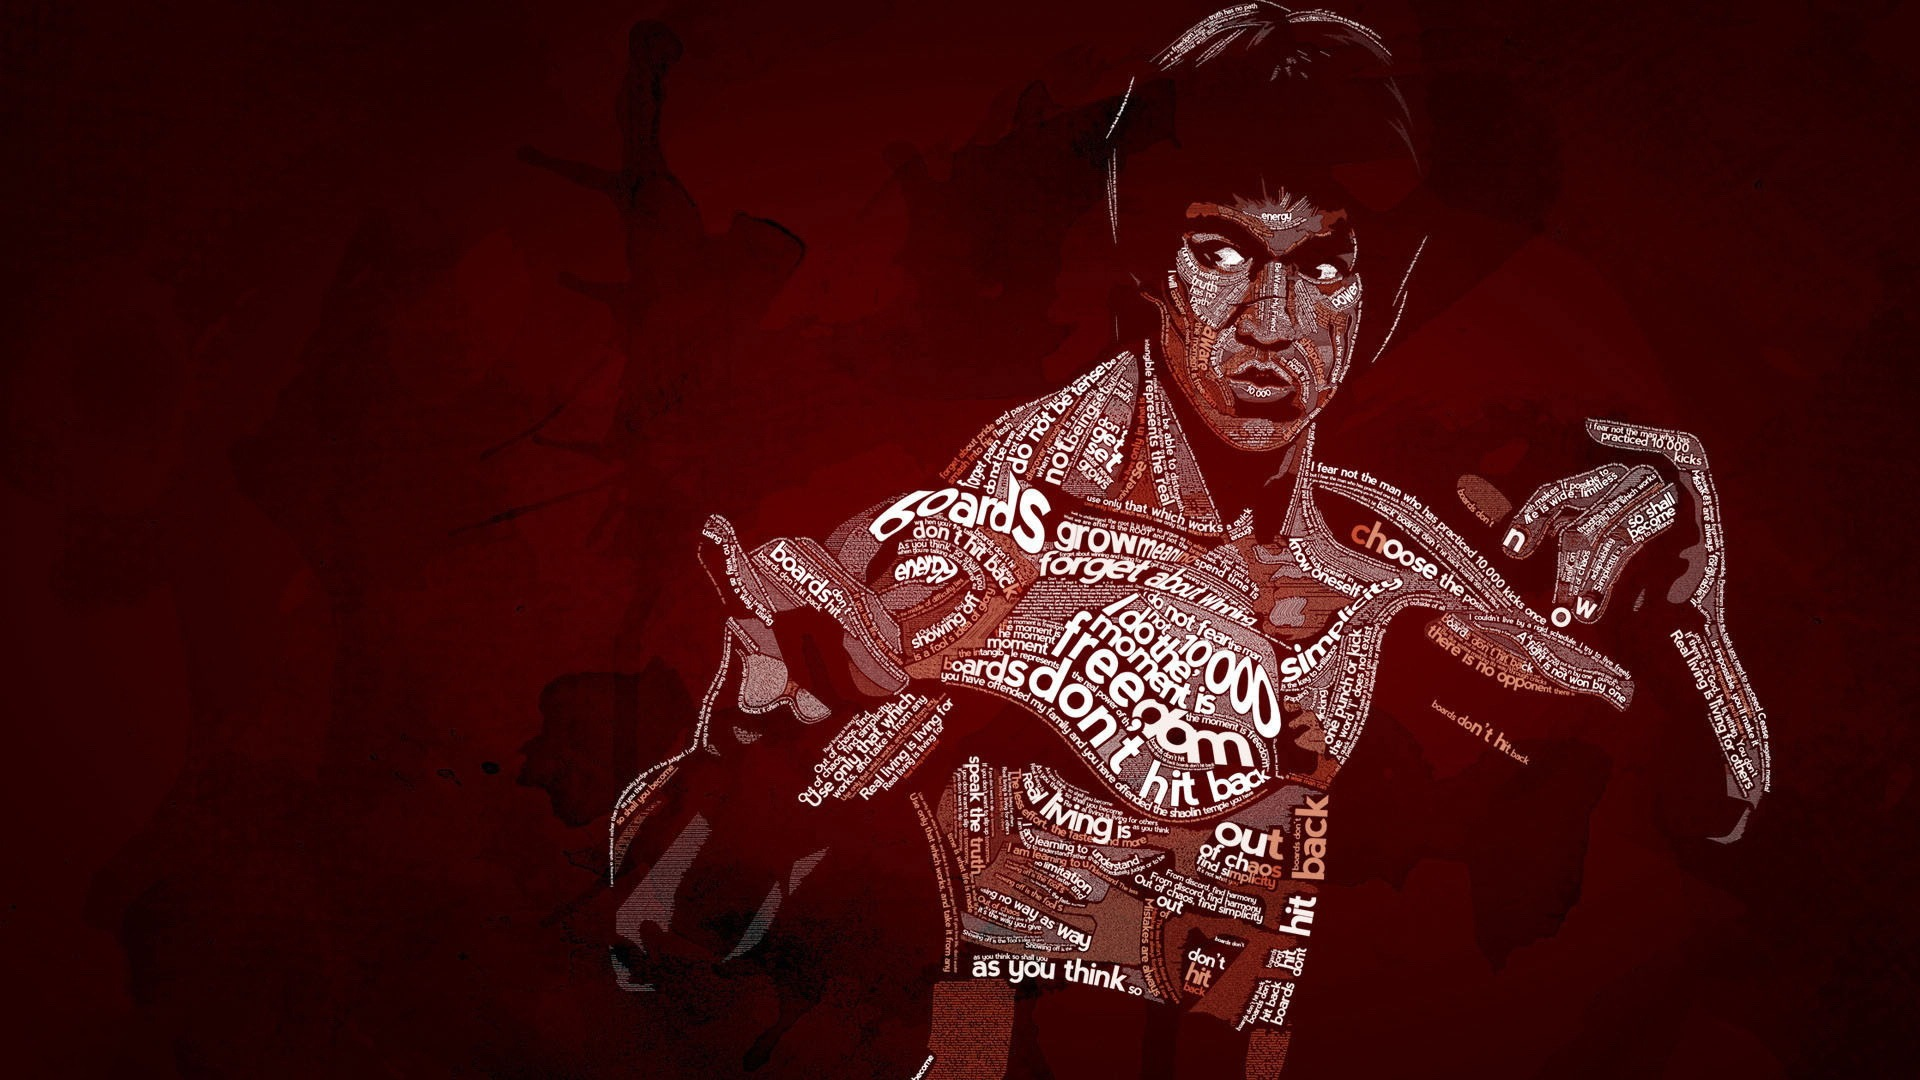 Bruce Lee Text Art Kung Fu Action Desktop Wallpaper 1920x1080